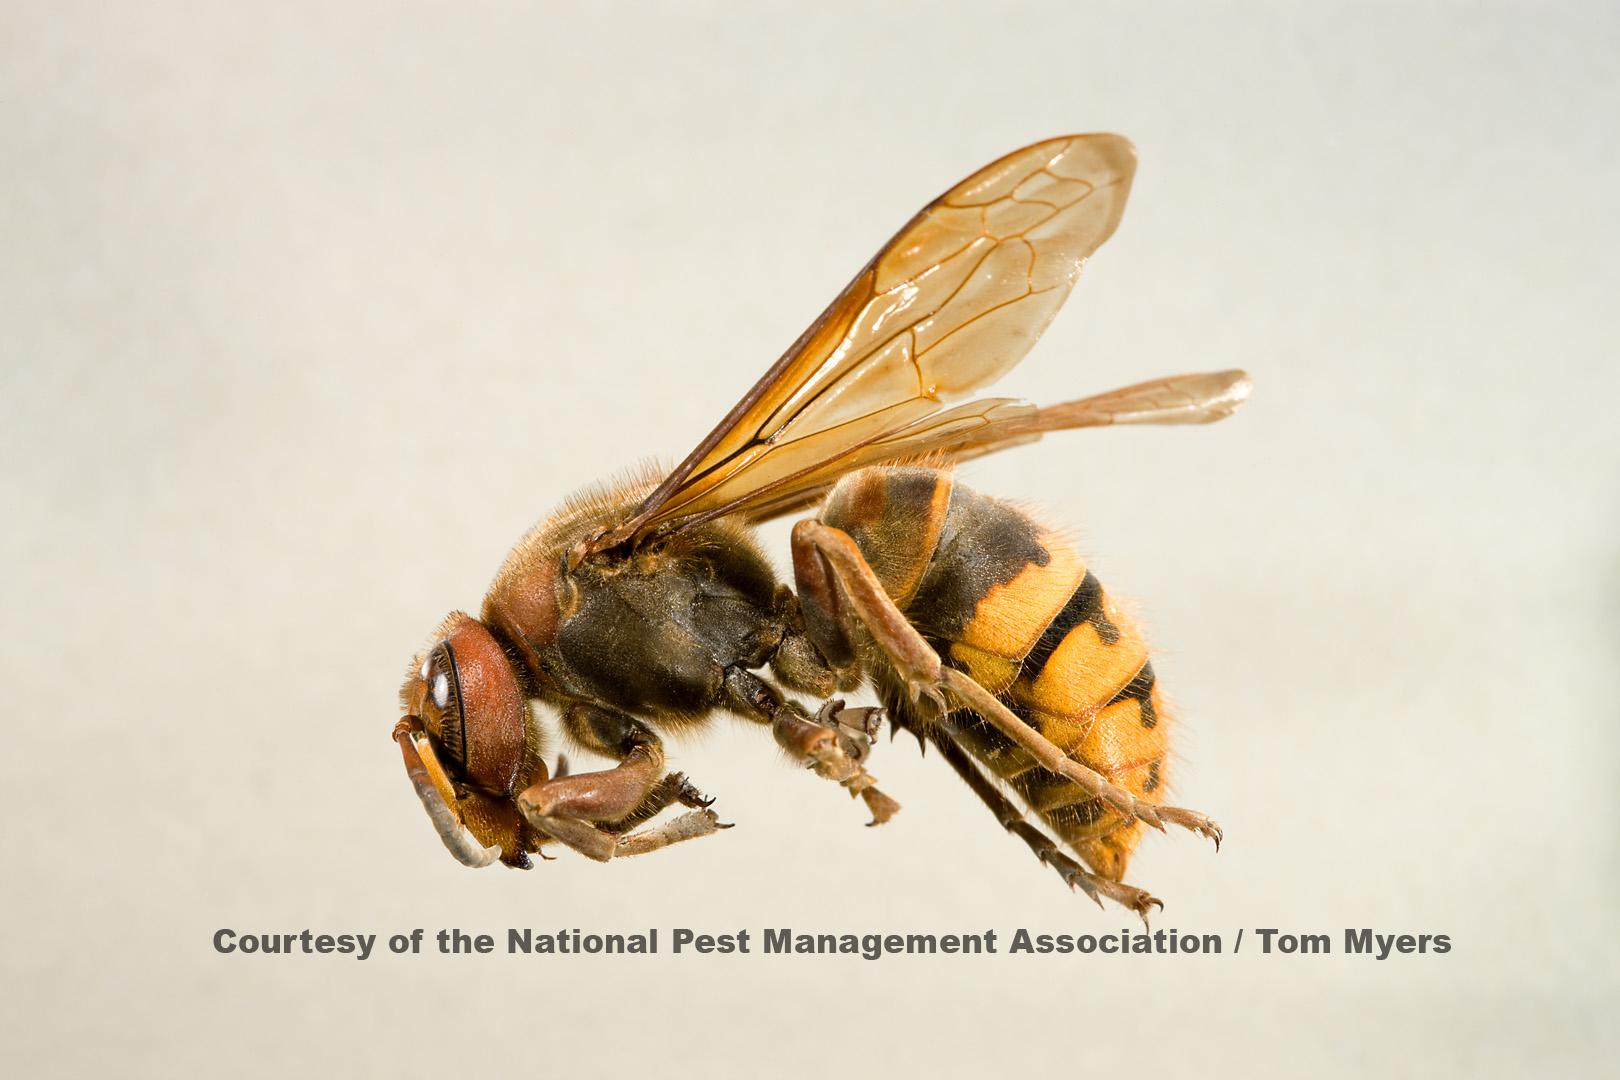 European hornet stinging insects also wasps and bees  guide to identifying pestworld rh